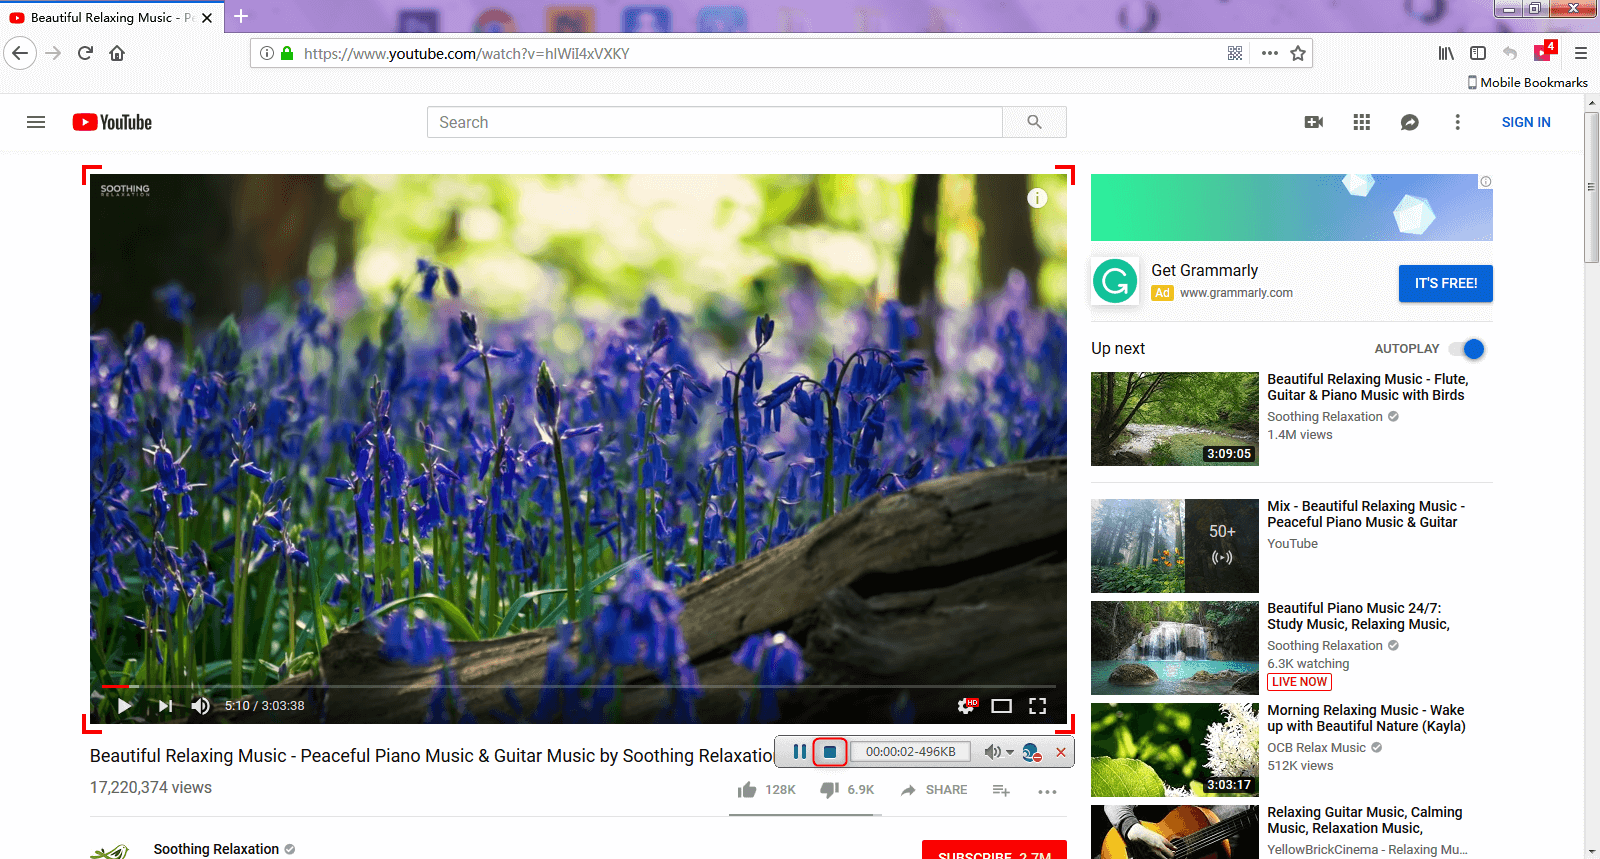 click the square button to stop recorording video on YouTube